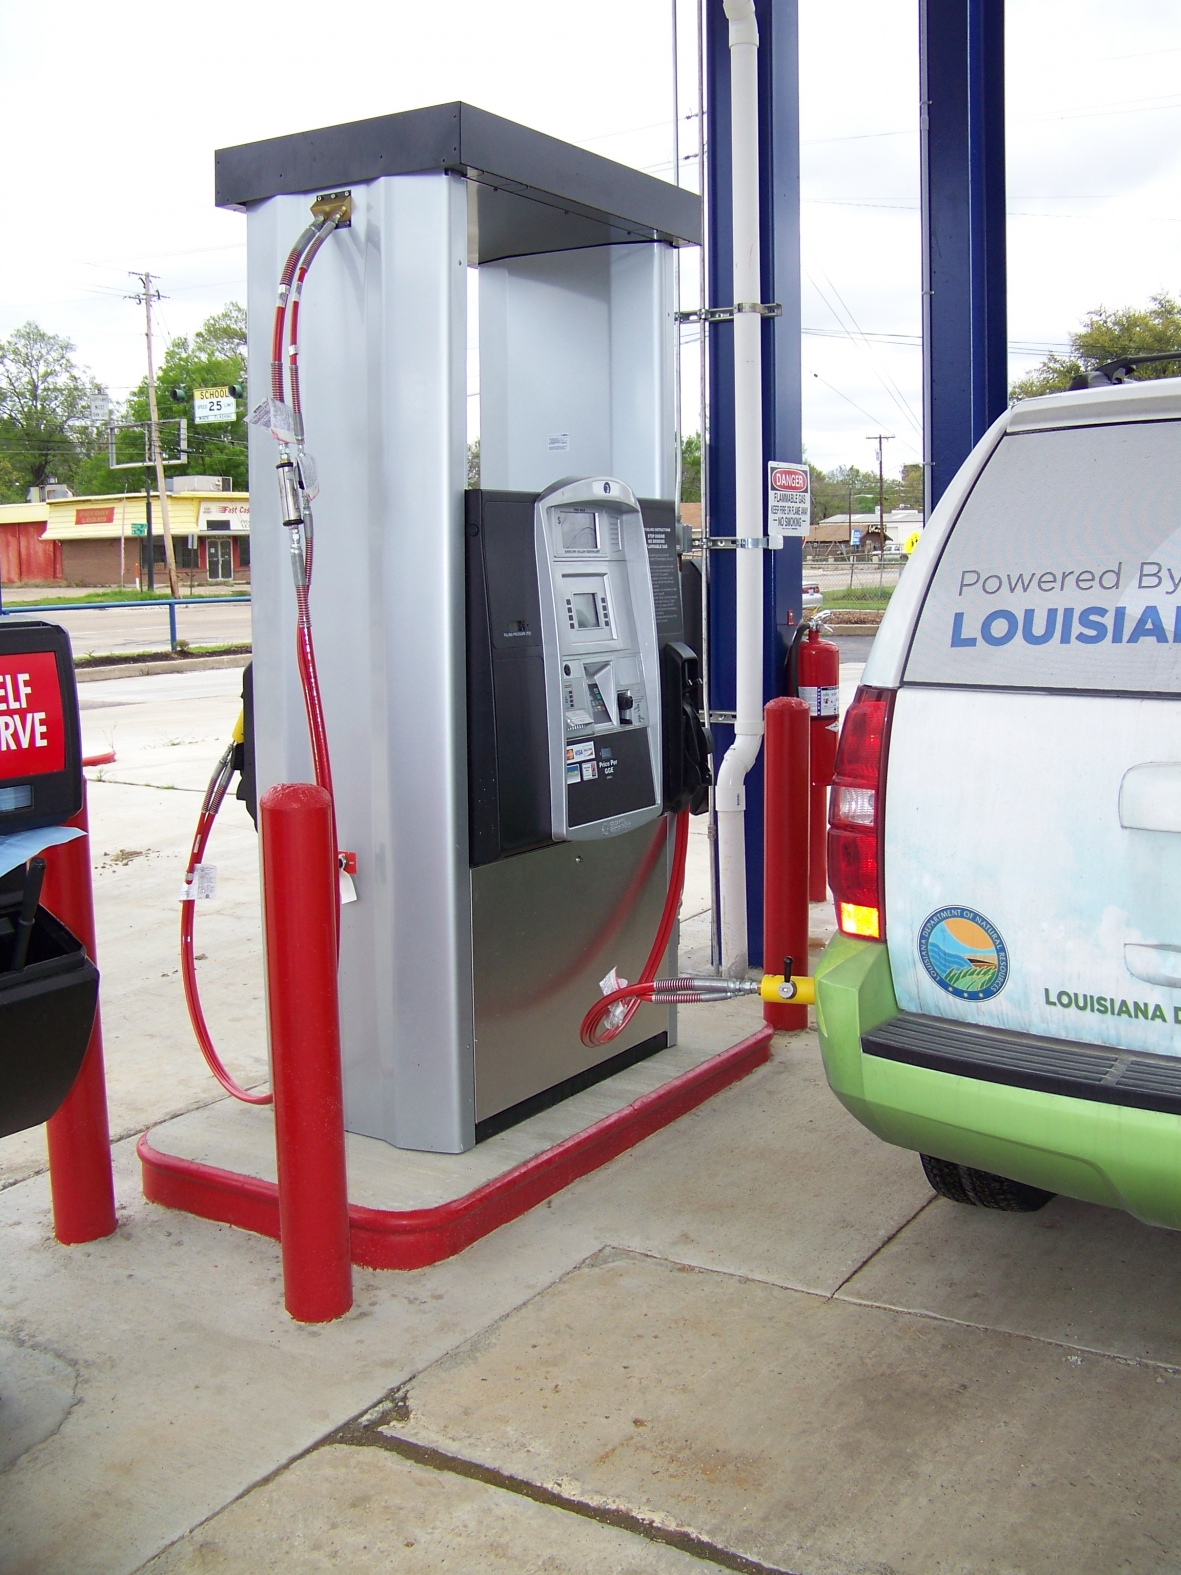 Shreveport, Louisianau0027s First Public Heavy Duty CNG Fueling Station  Officially Opened On Earth Day.